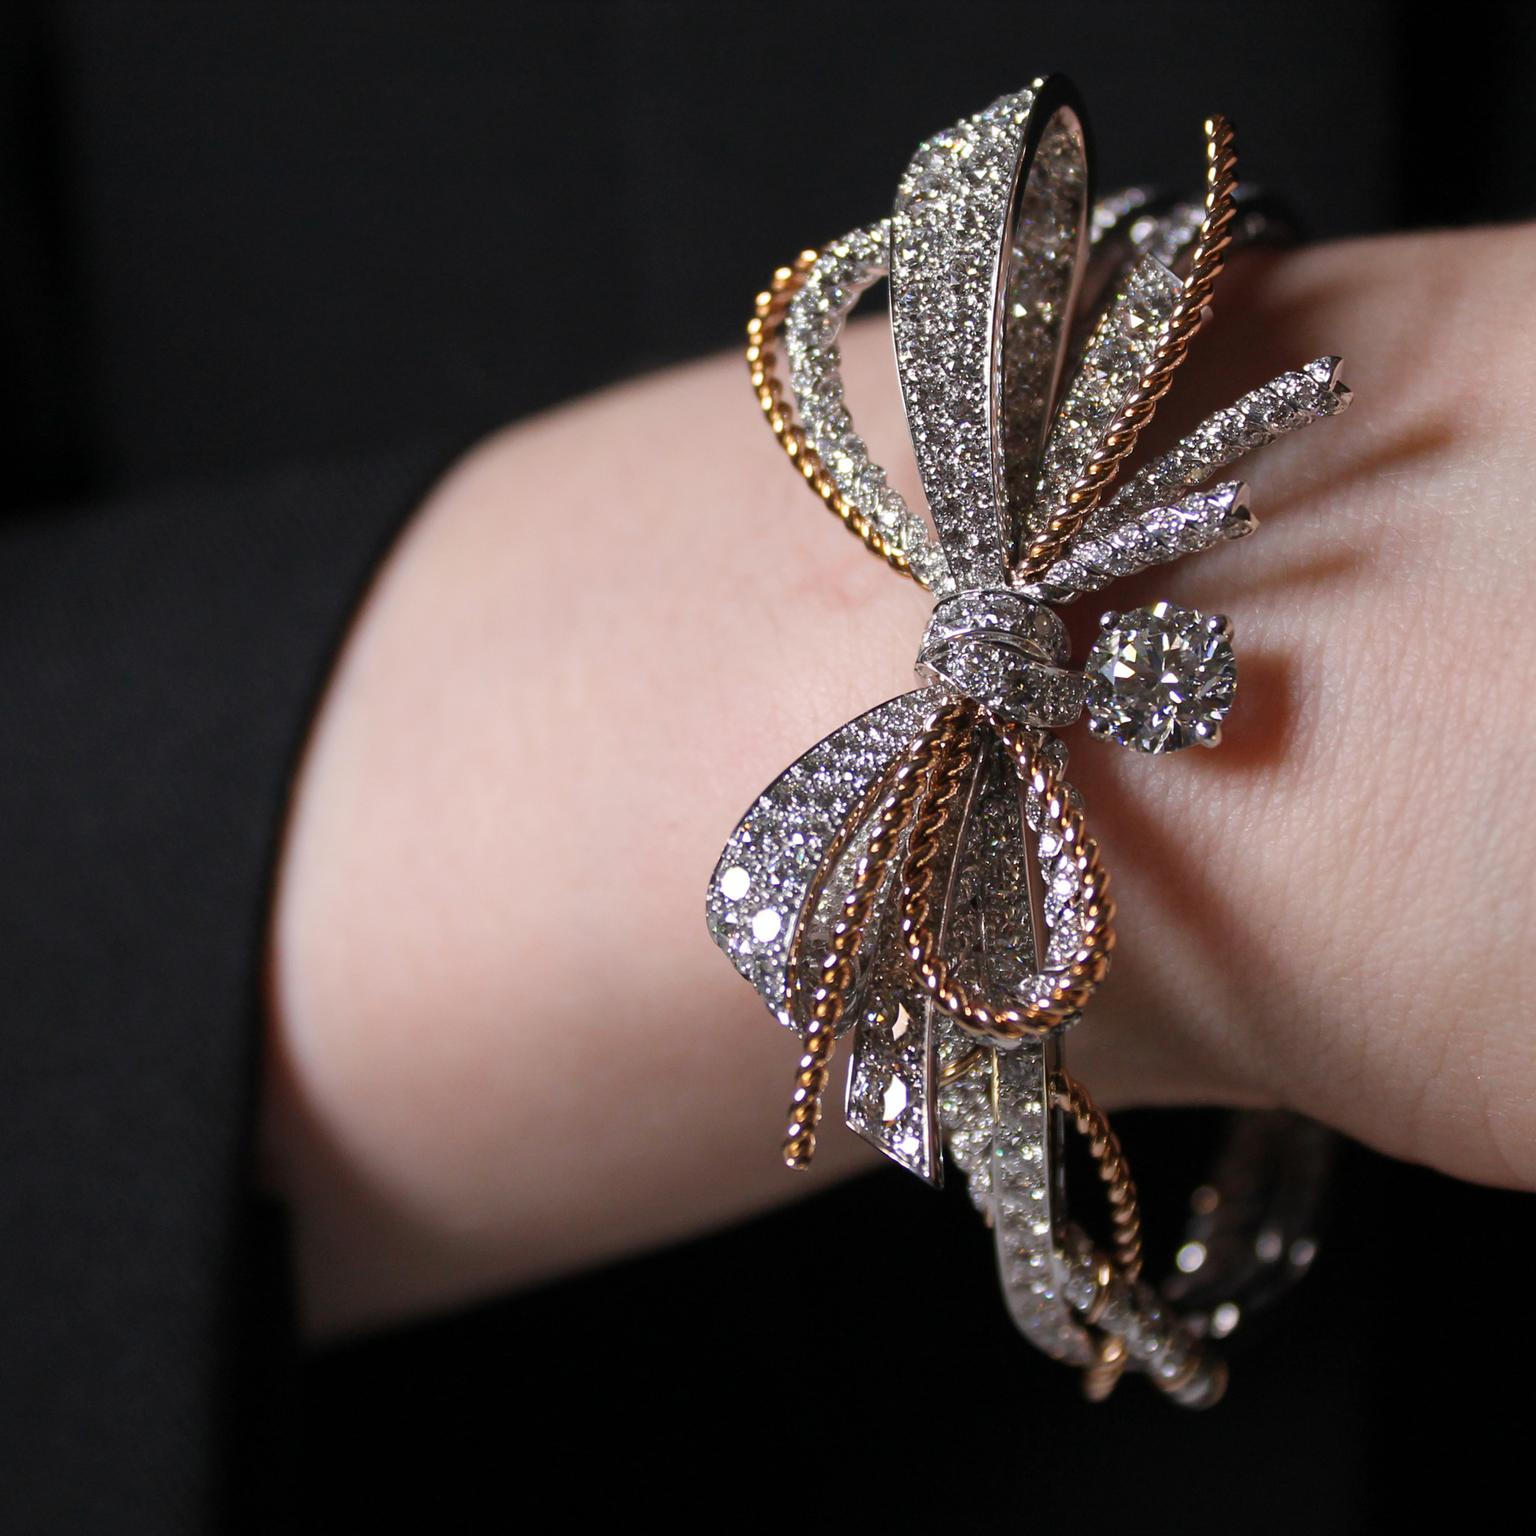 Chaumet Insolence high jewellery bracelet